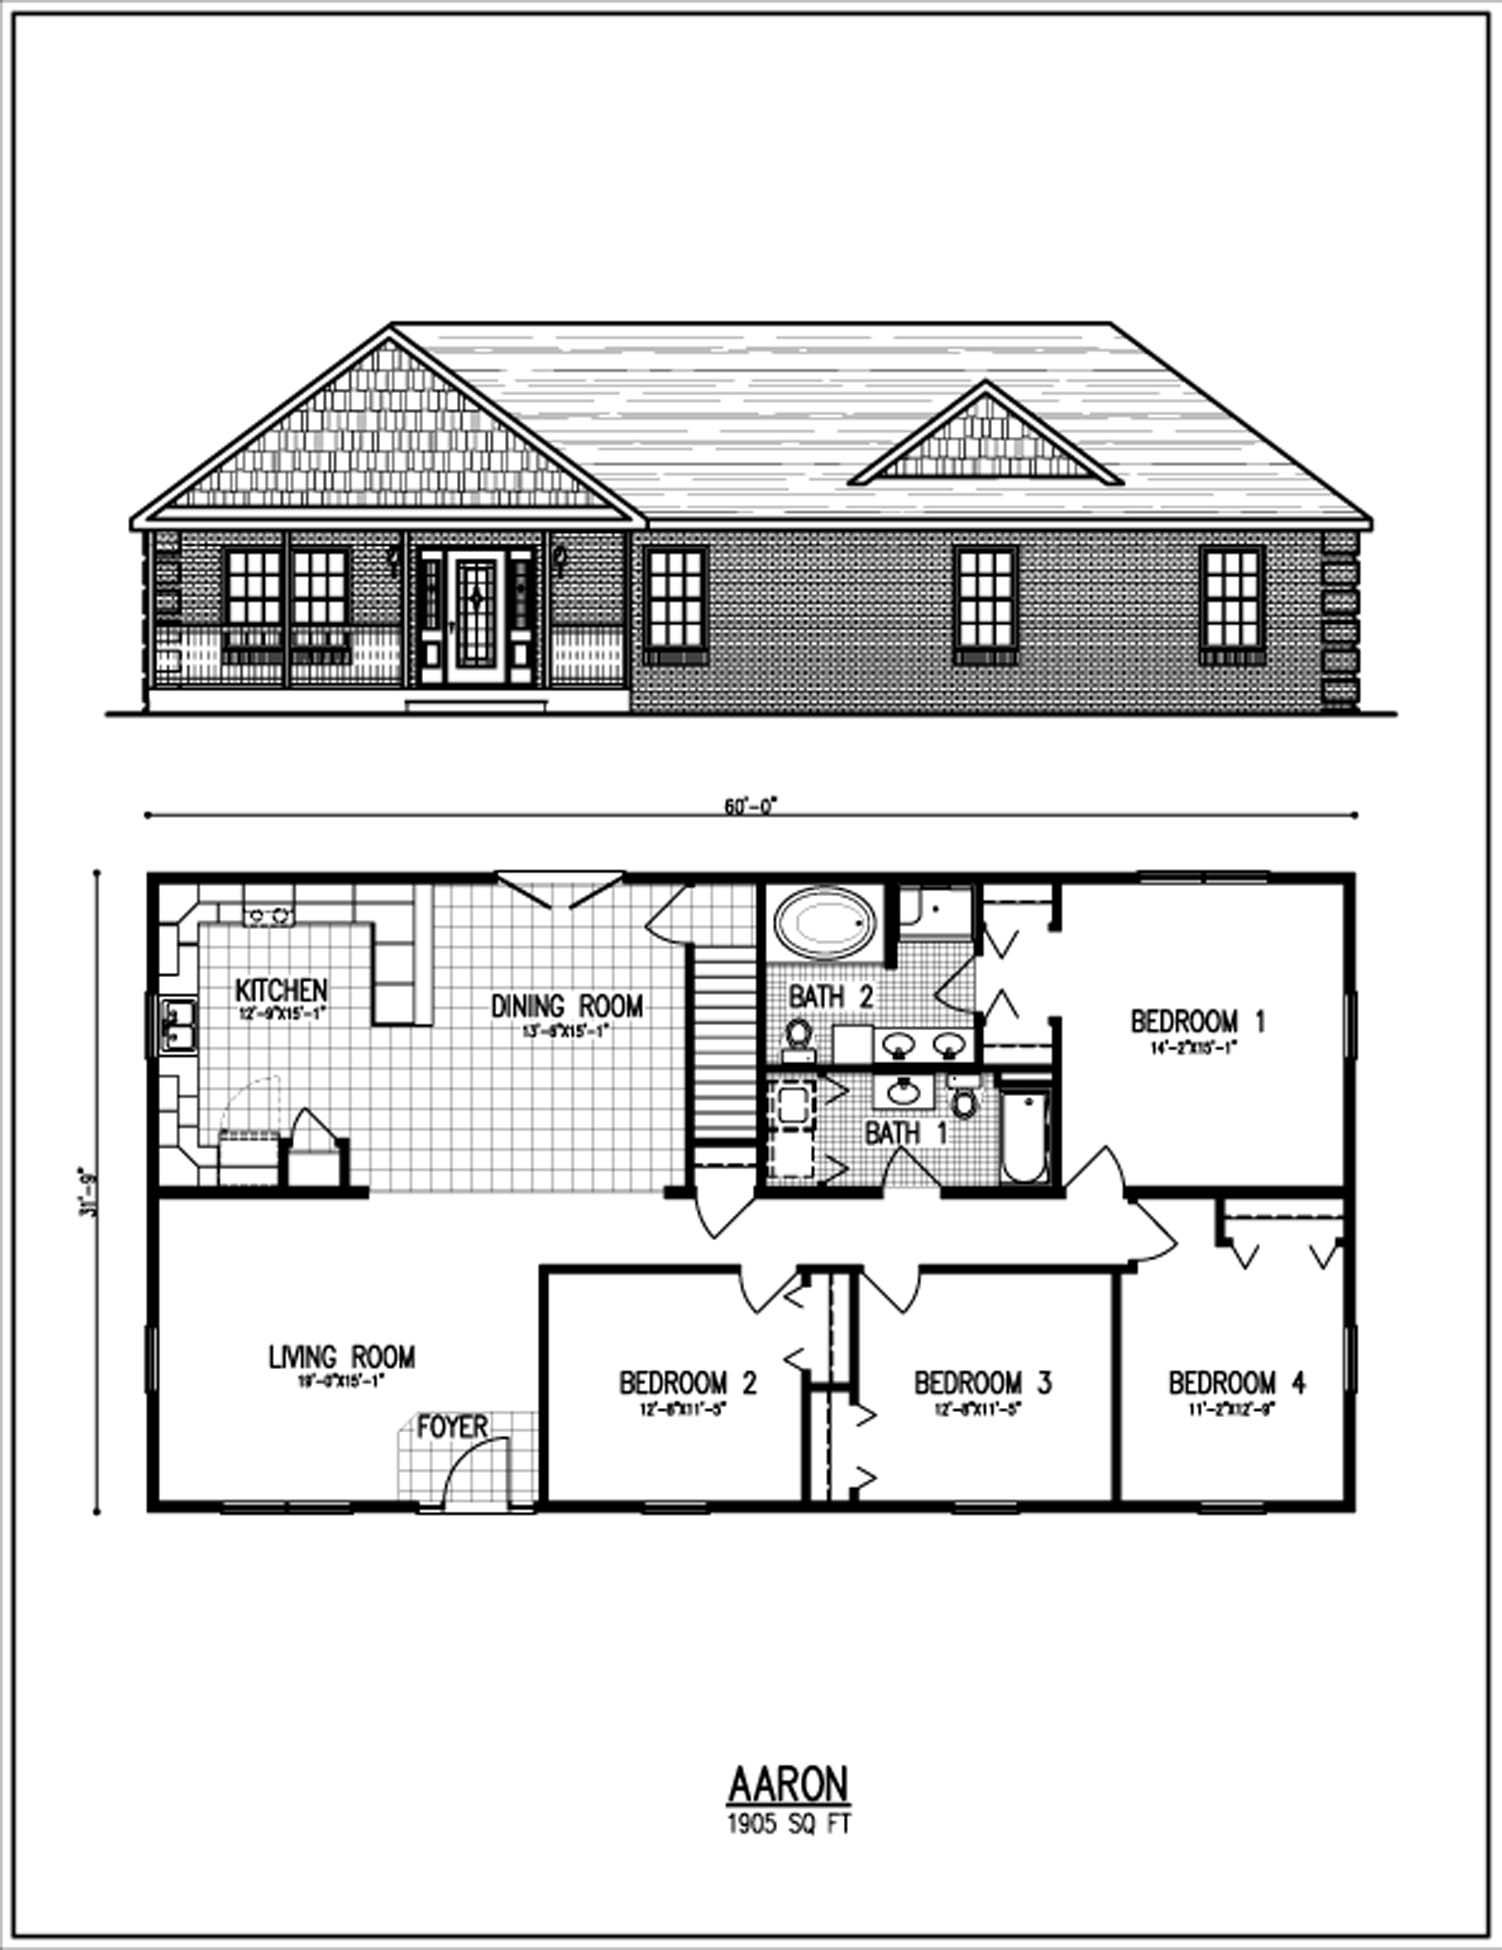 All american homes floorplan center staffordcape for All american homes floor plans